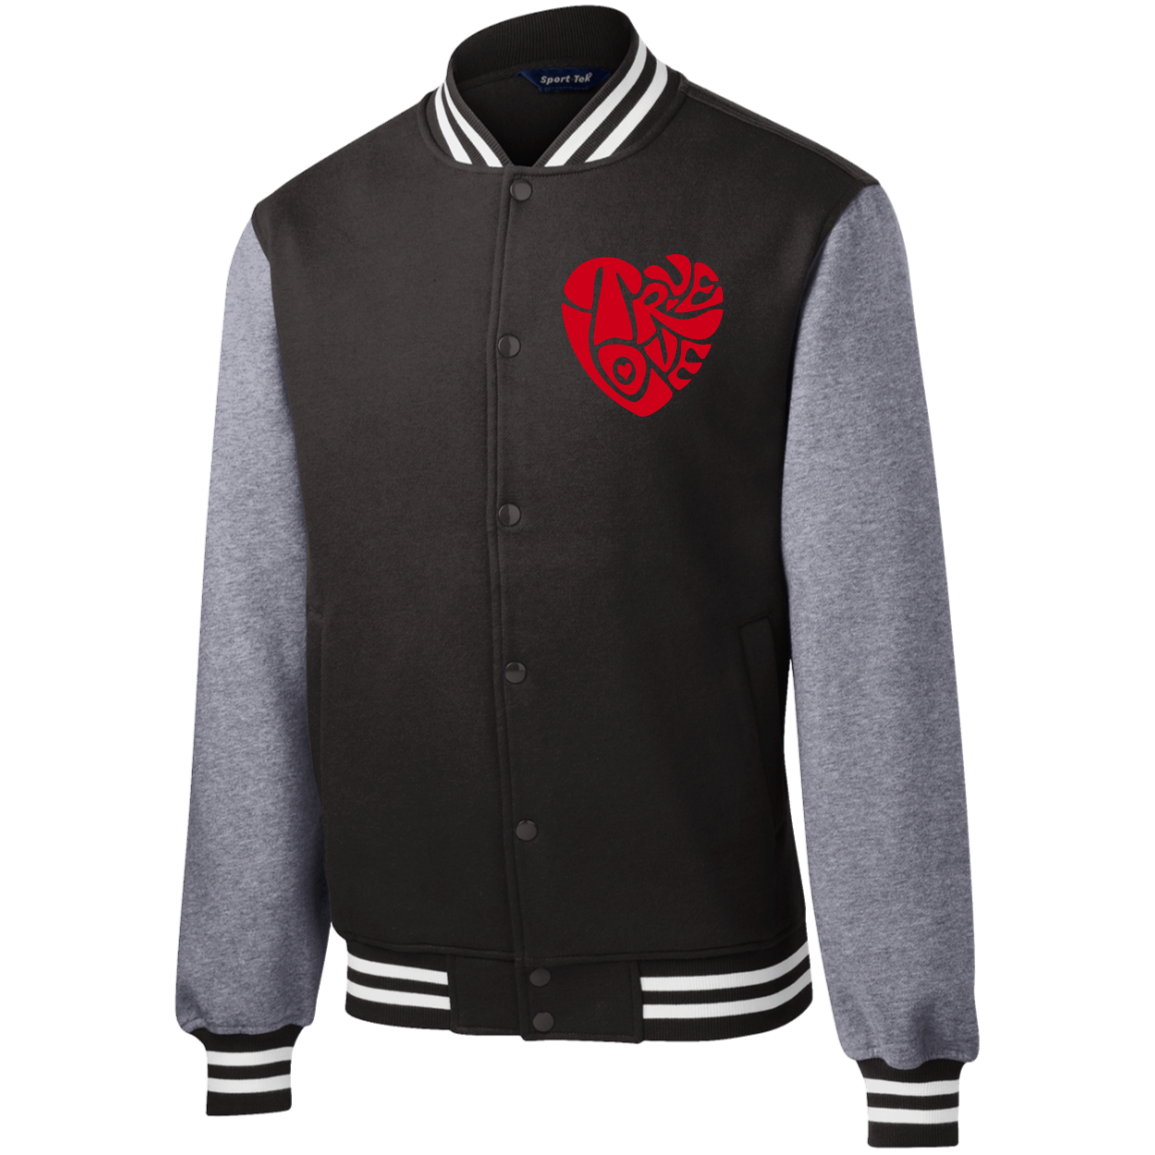 MENS TRUE LOVE by Wisam Embroidered Fleece Letterman Jacket